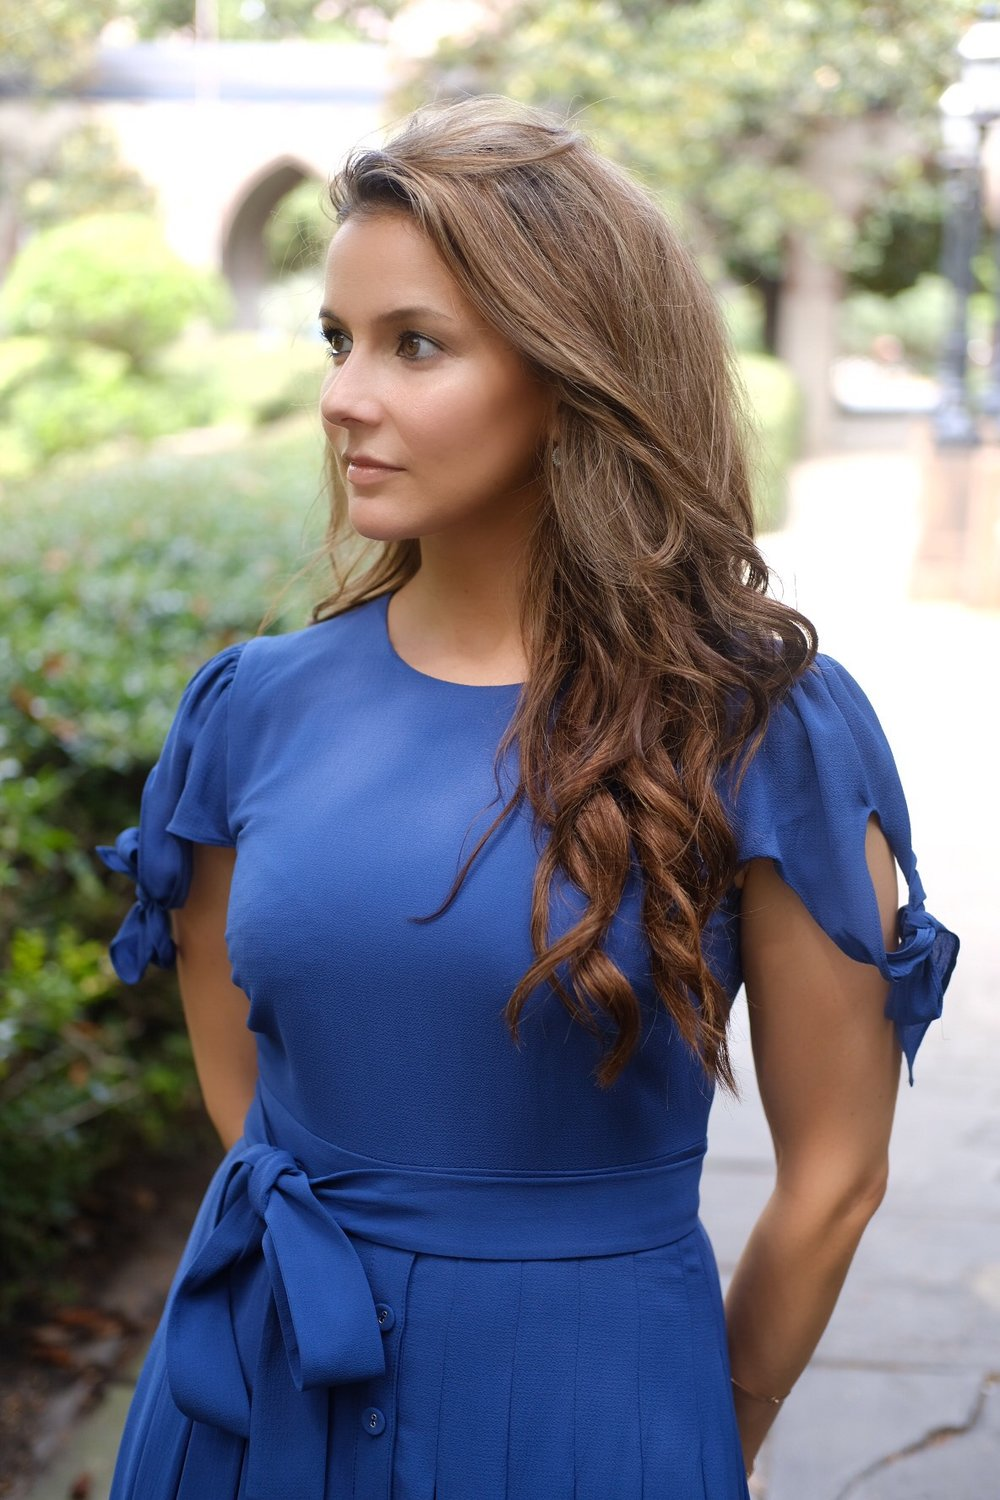 The Bette day dress by Gal Meets Glam on Brenna Michaels in Savannah Georgia